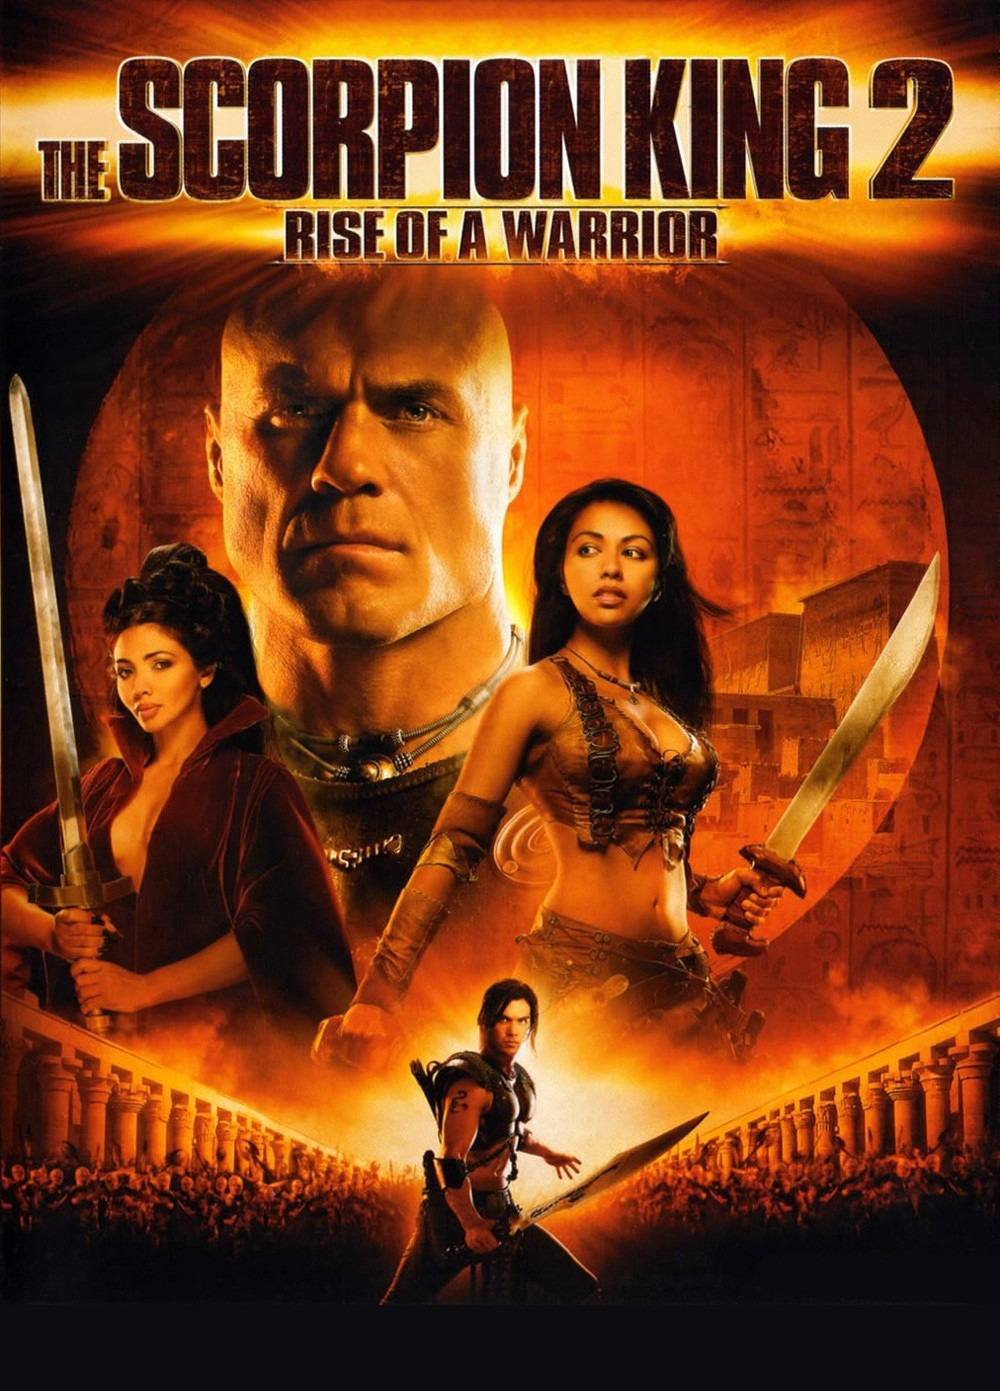 The Scorpion King 2: Rise of a Warrior | Download movies, Watch ... Natalie Becker Scorpion King 2